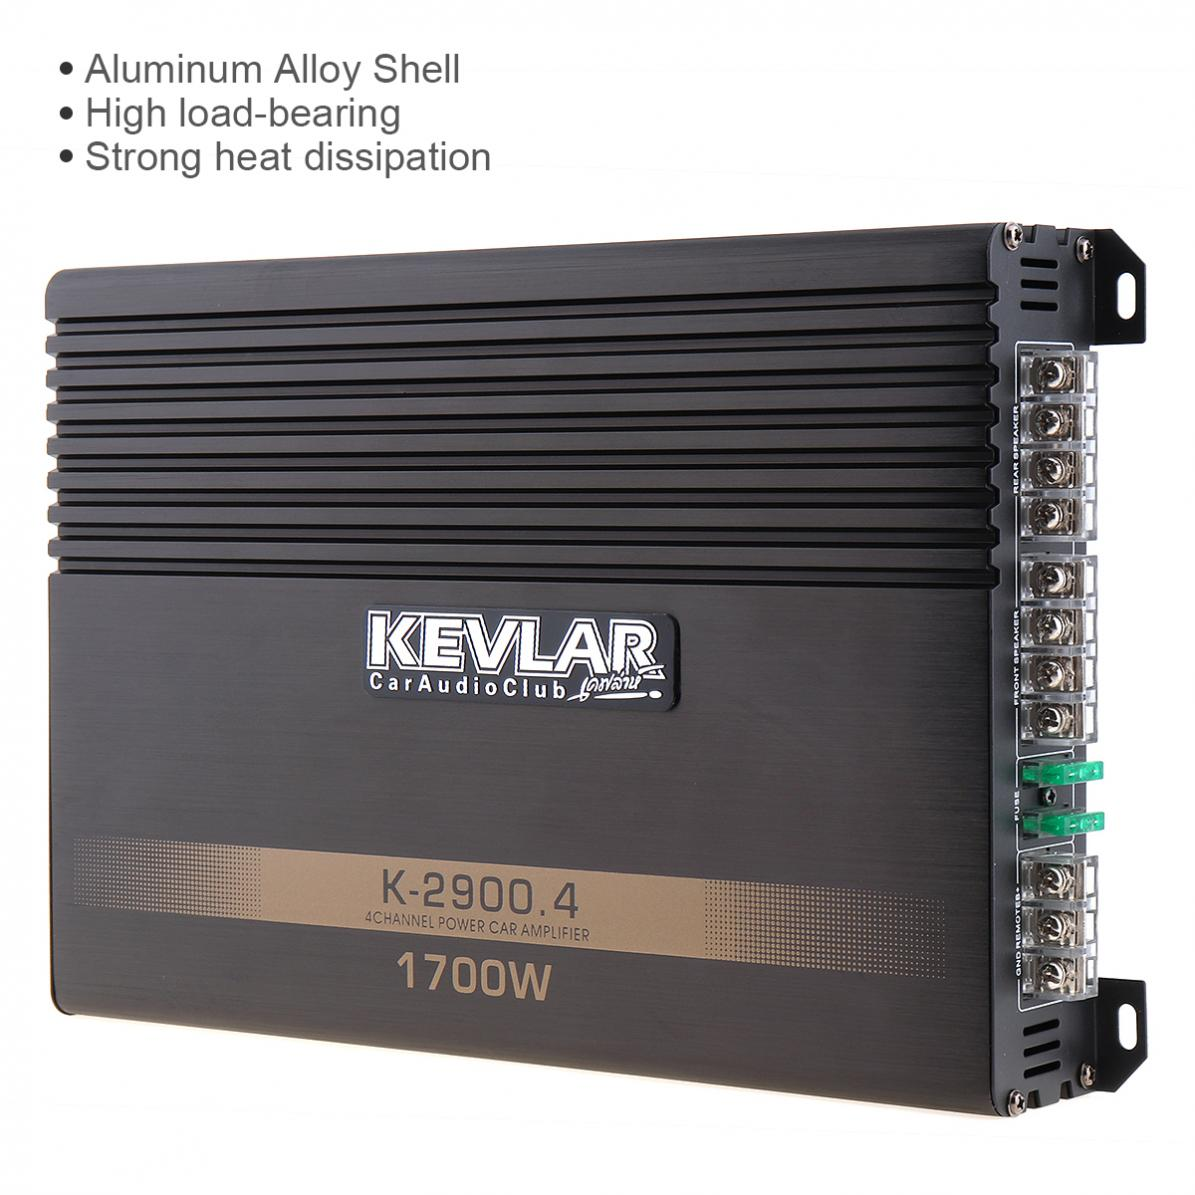 Universal 1700W Class AB Digital 4 Channel Aluminum Alloy High Power Car Stereo Amplifiers for Car